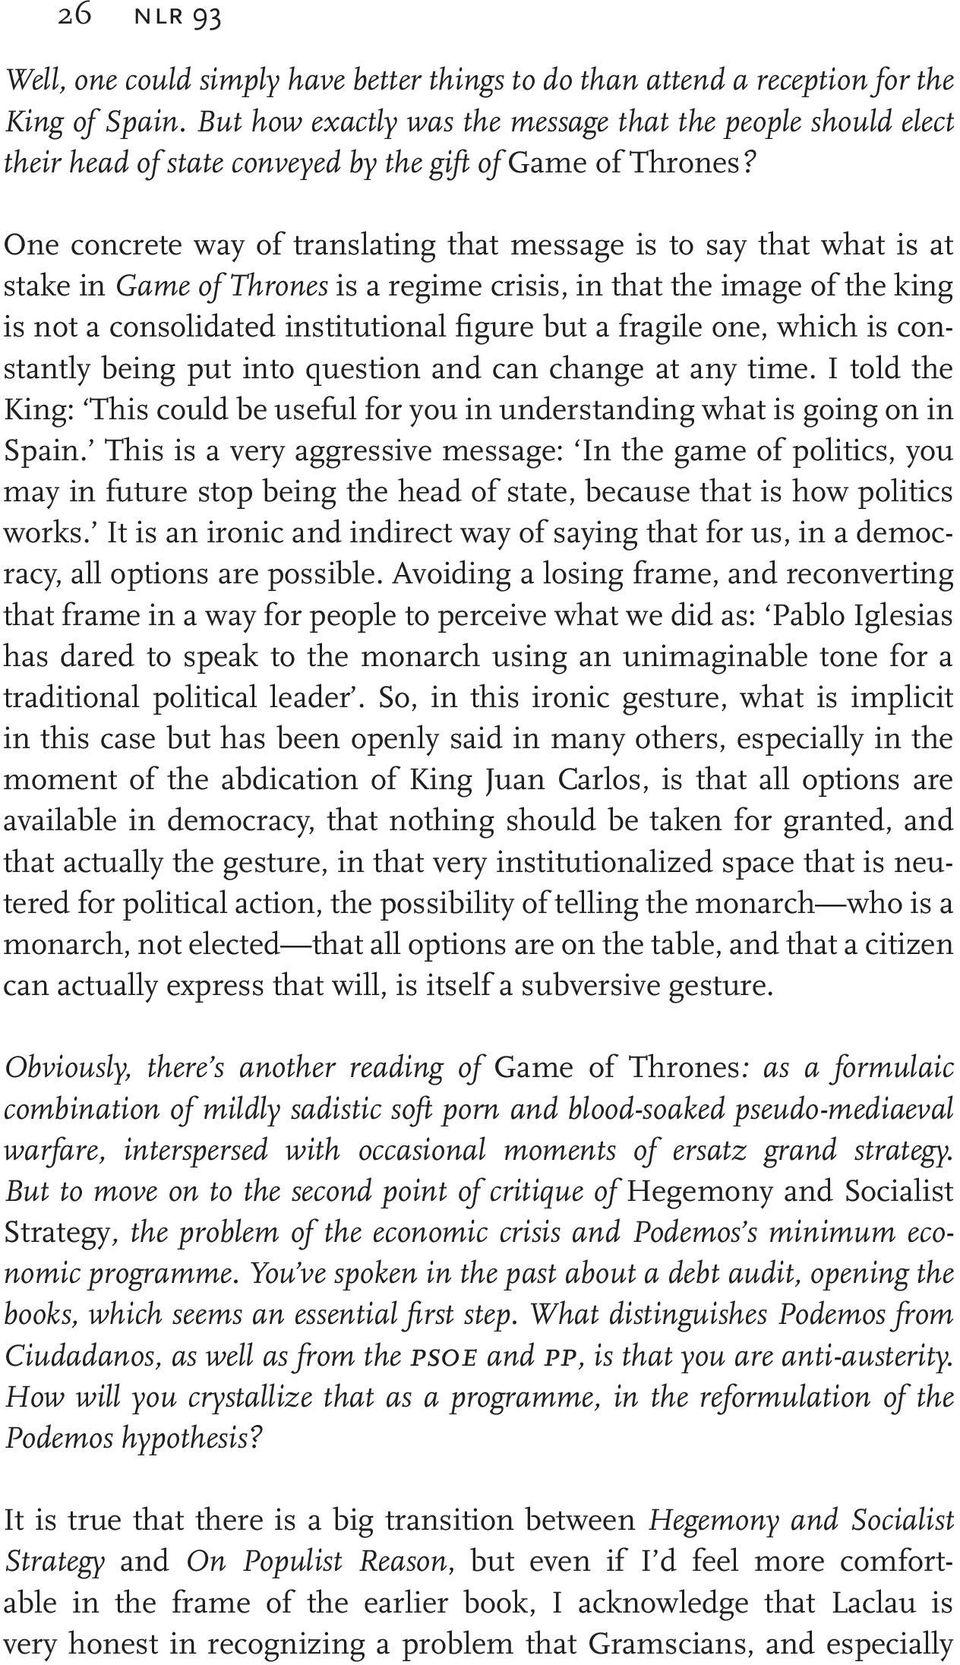 One concrete way of translating that message is to say that what is at stake in Game of Thrones is a regime crisis, in that the image of the king is not a consolidated institutional figure but a